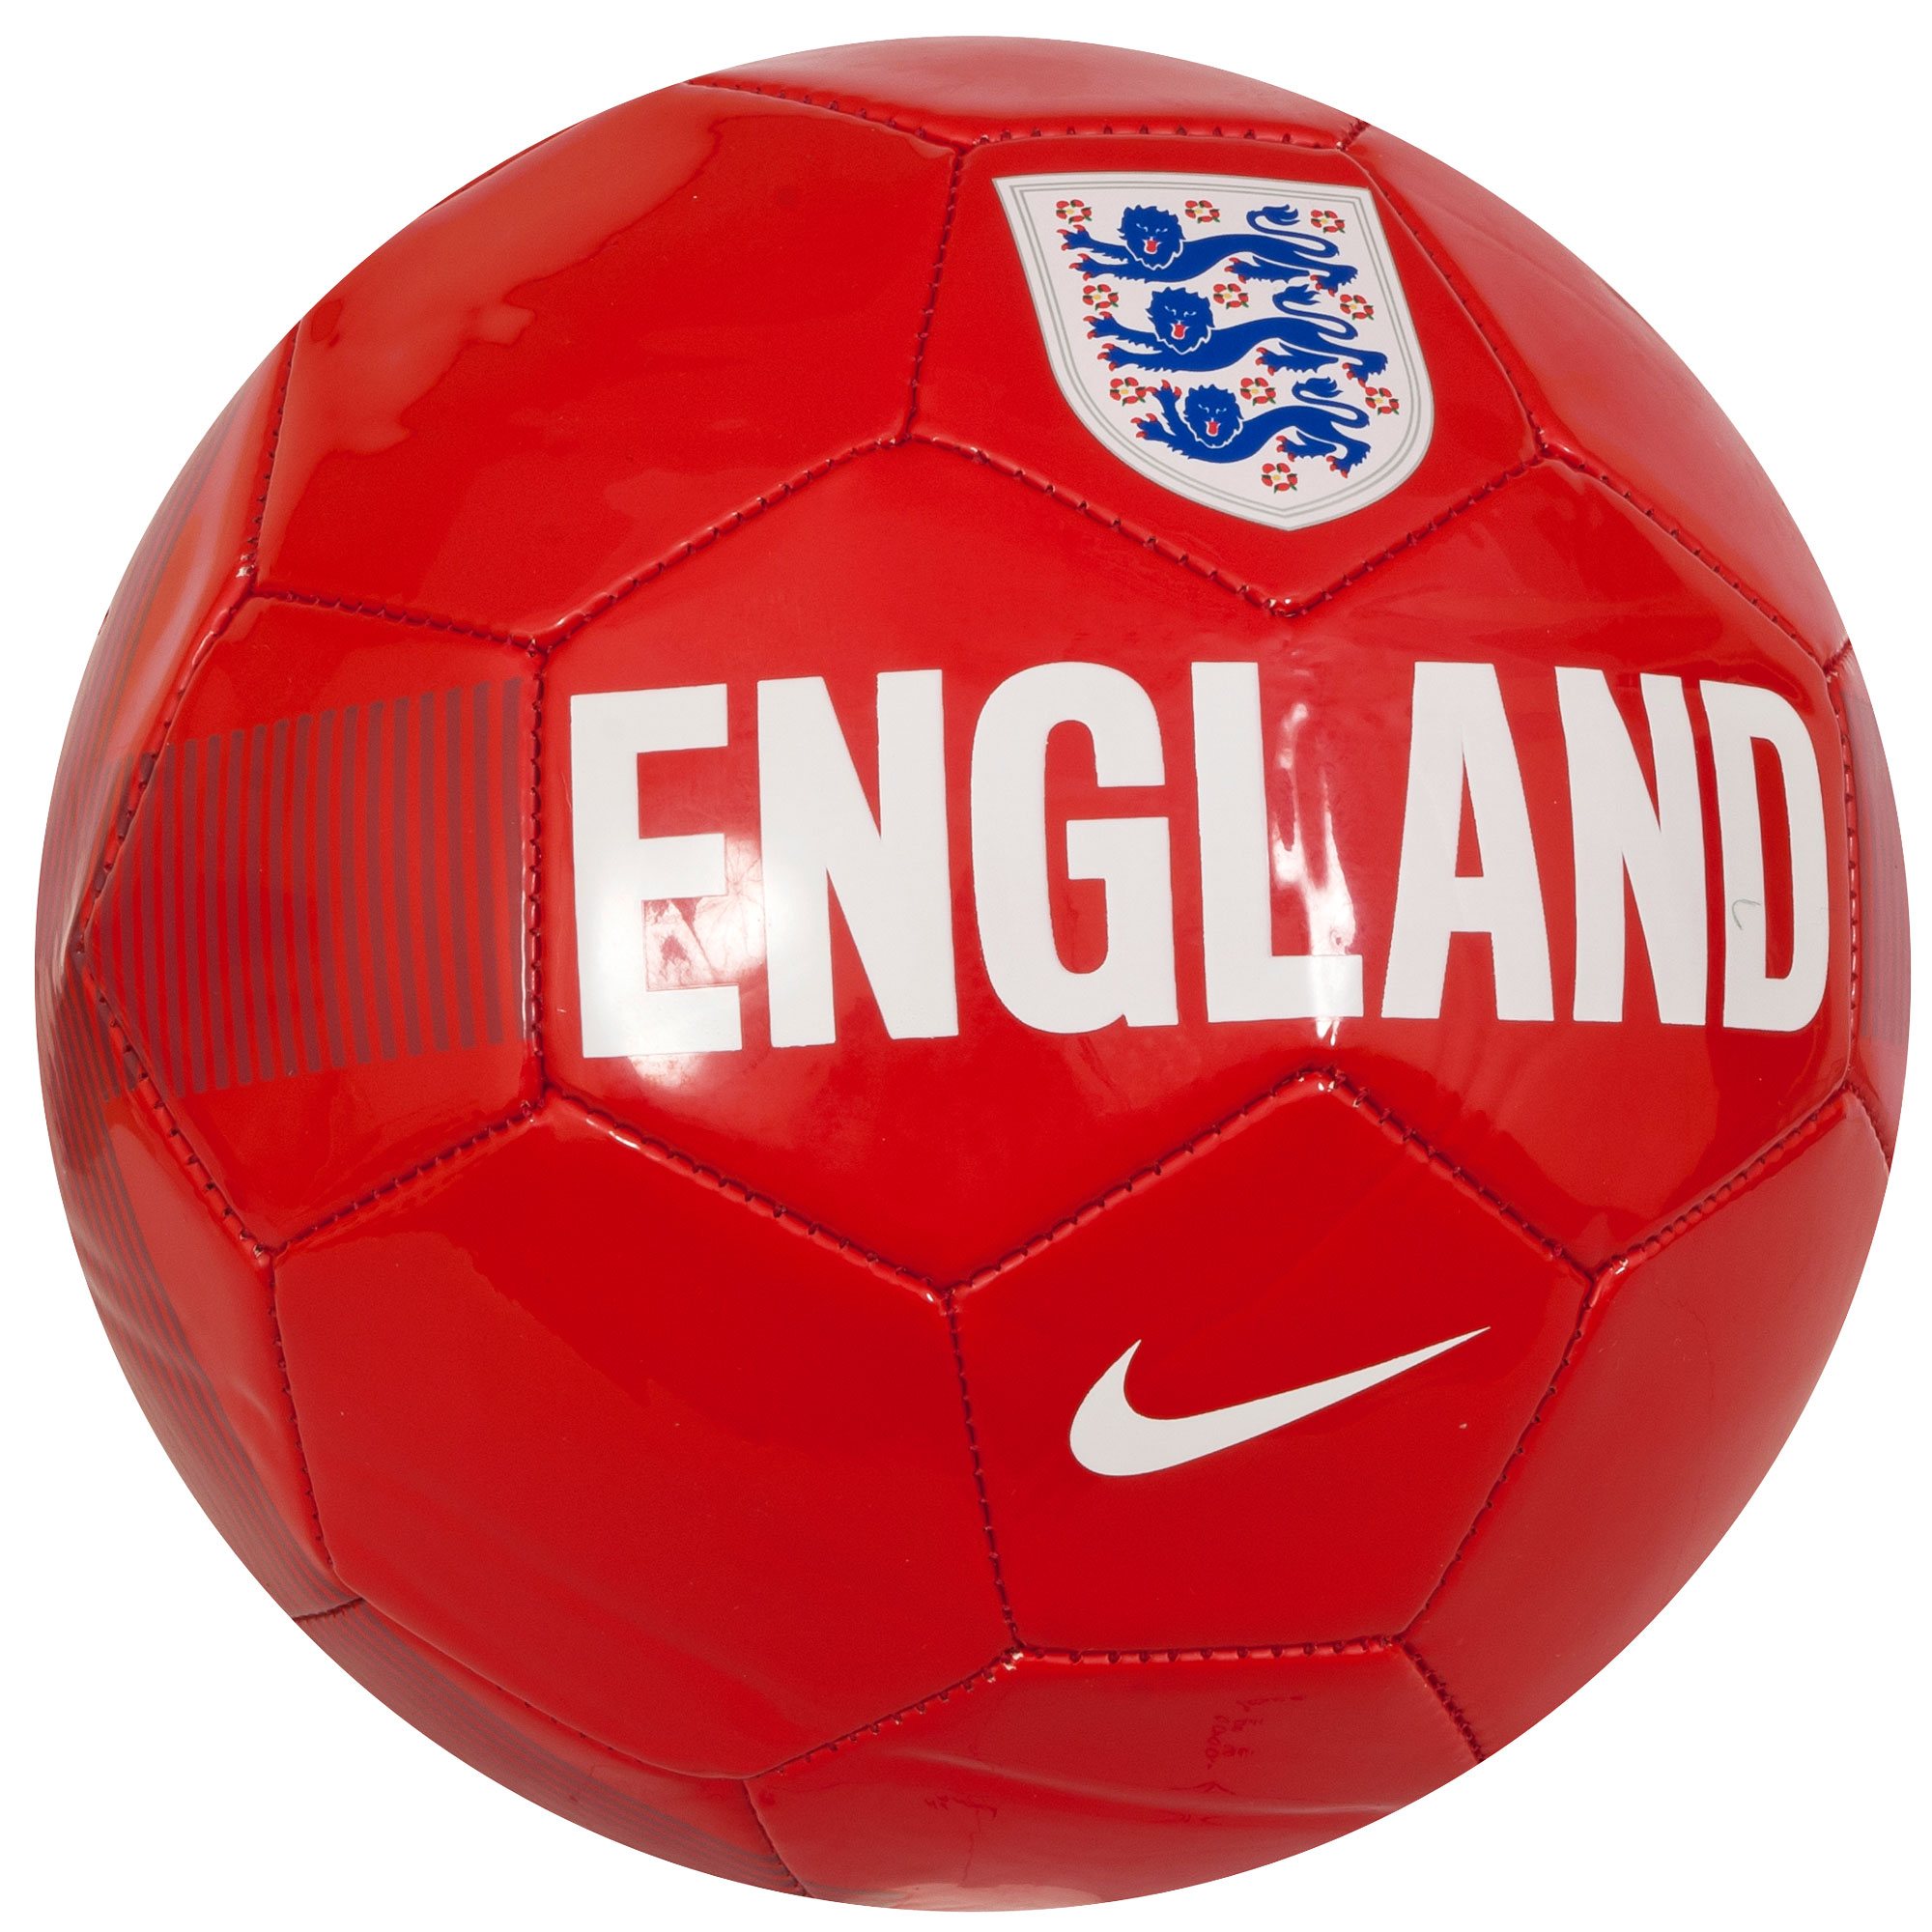 England Supporters Ball 2014 / 2015 - 05